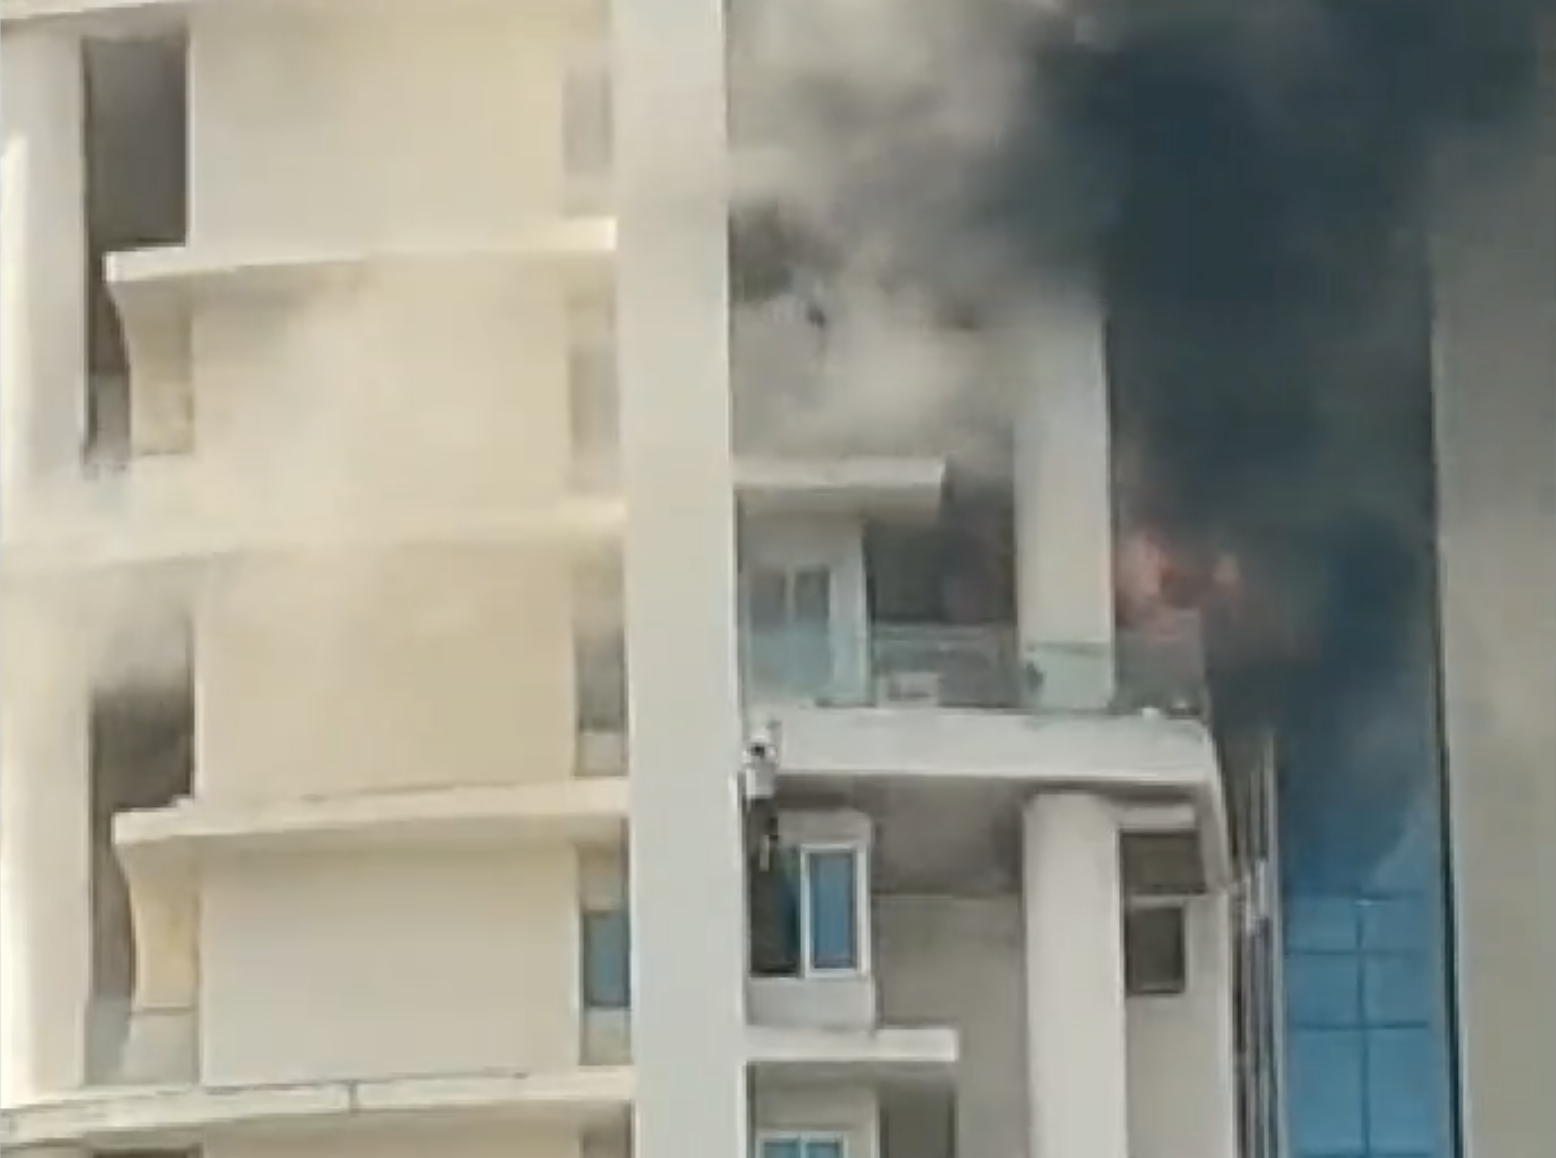 India: Man falls to death after massive fire breaks out in Mumbai apartment